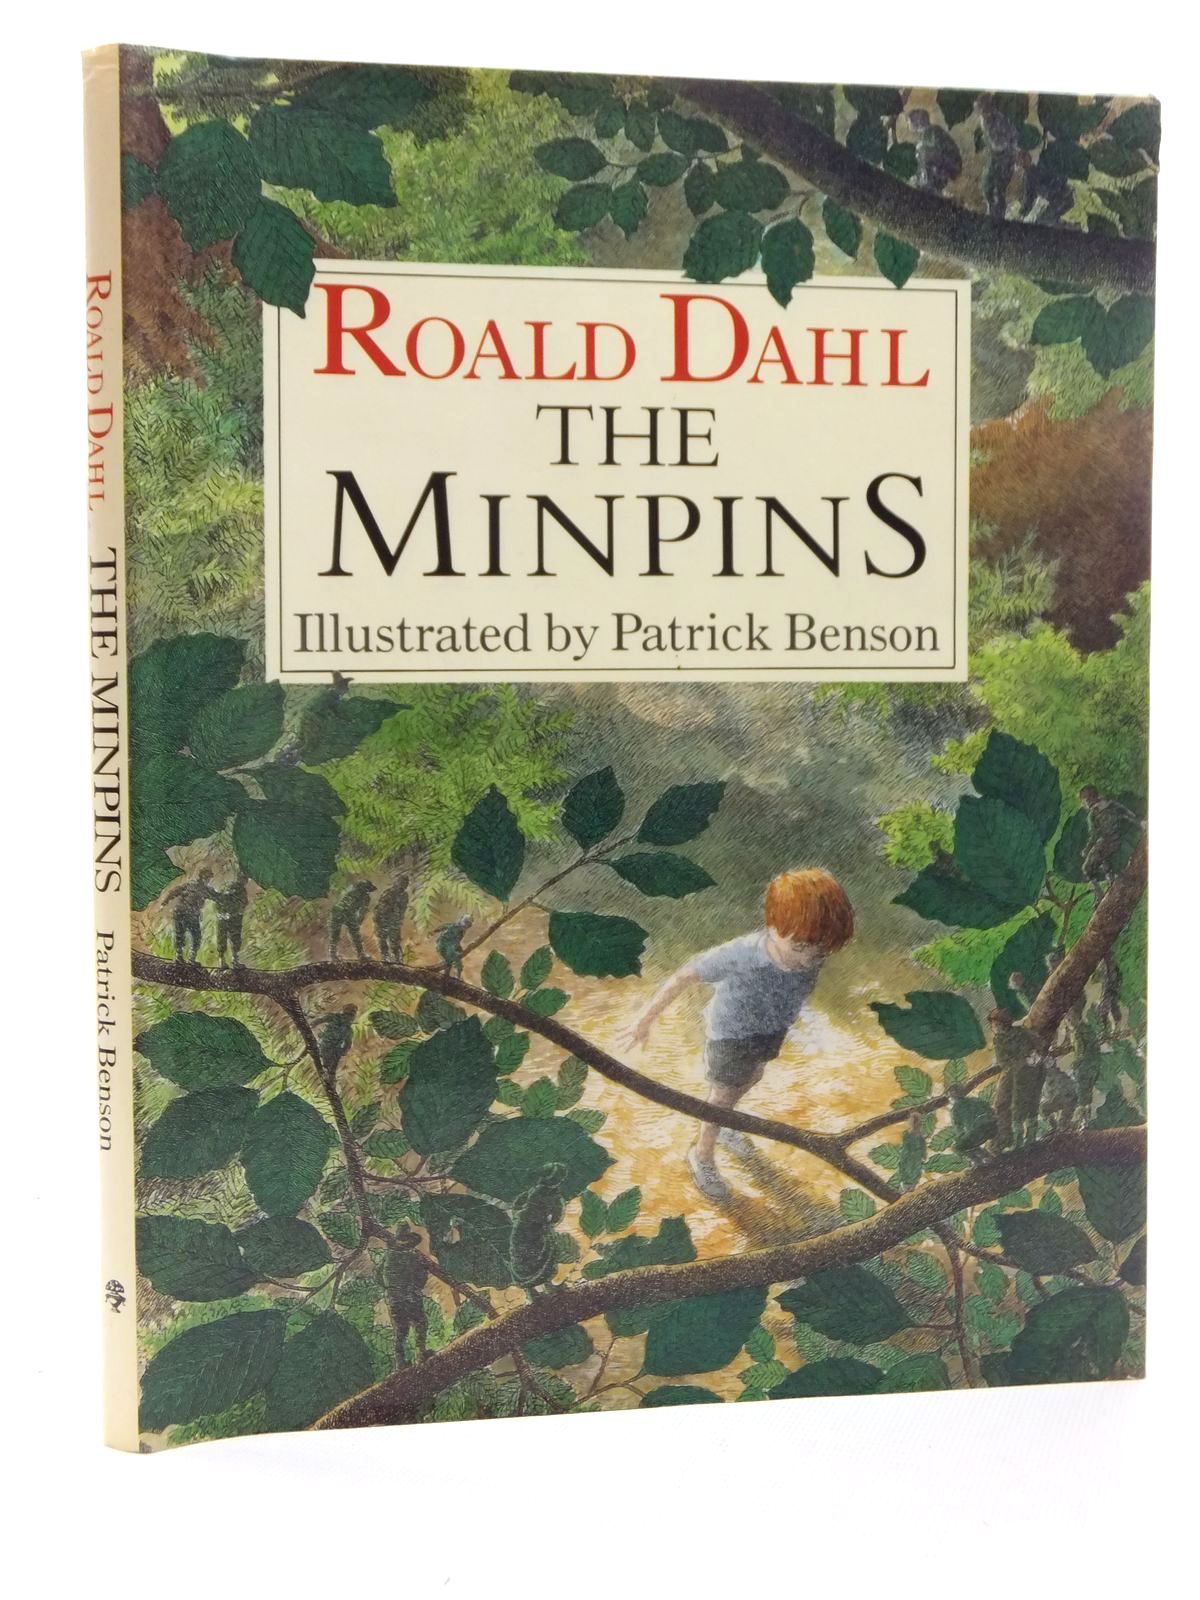 Photo of THE MINPINS written by Dahl, Roald illustrated by Benson, Patrick published by Jonathan Cape (STOCK CODE: 1815443)  for sale by Stella & Rose's Books